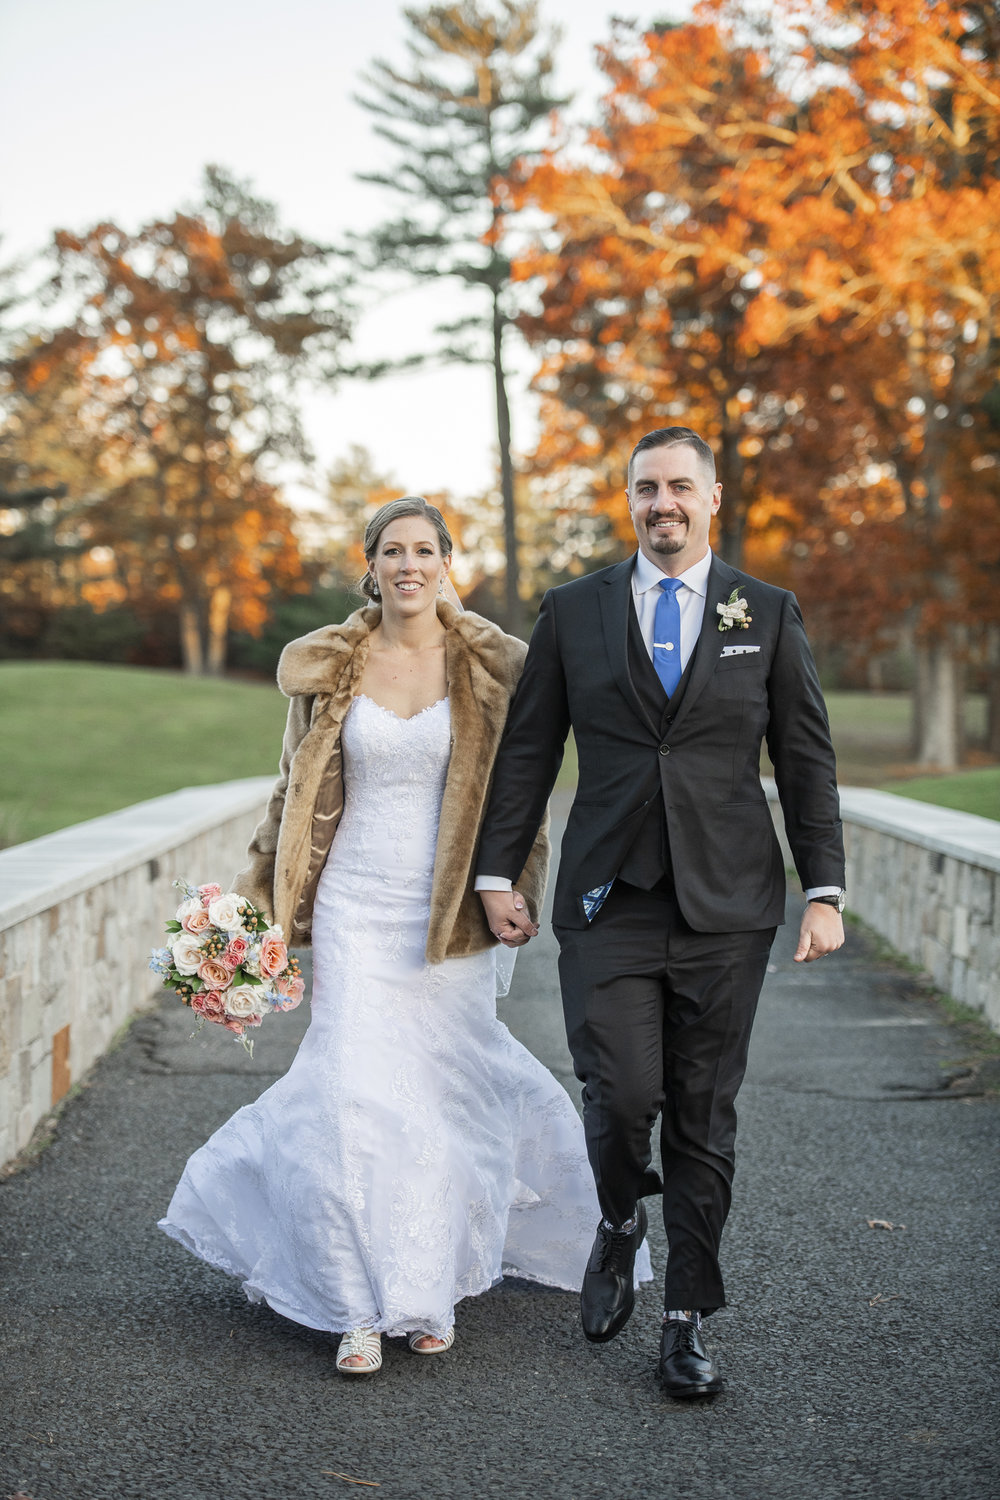 Meghan and Joseph-20181110-3106-RT-2000.jpg